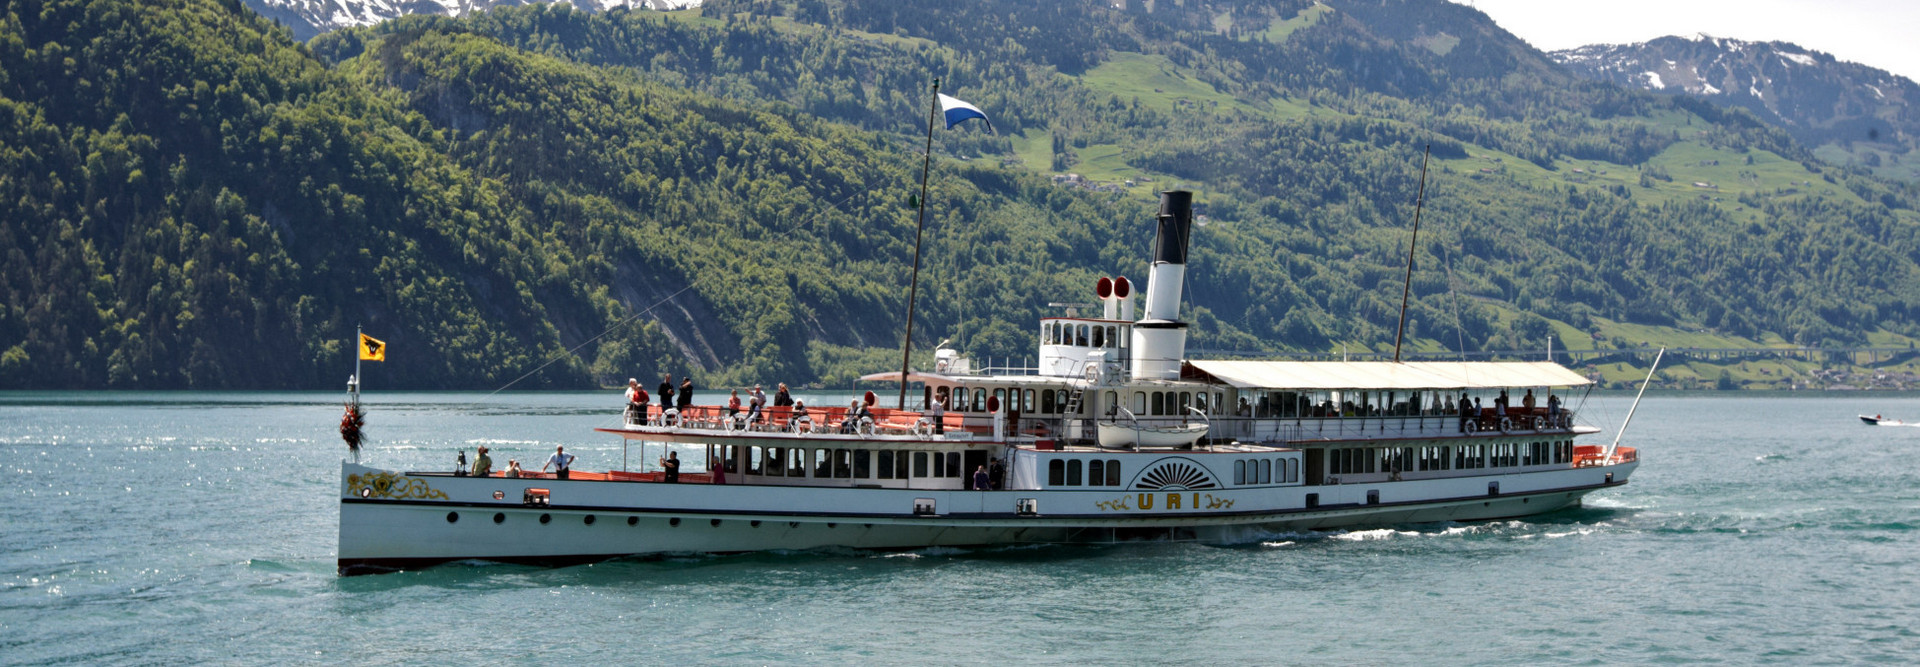 Steamboat Uri in front of the Seelisberg during a trip on Lake Lucerne.